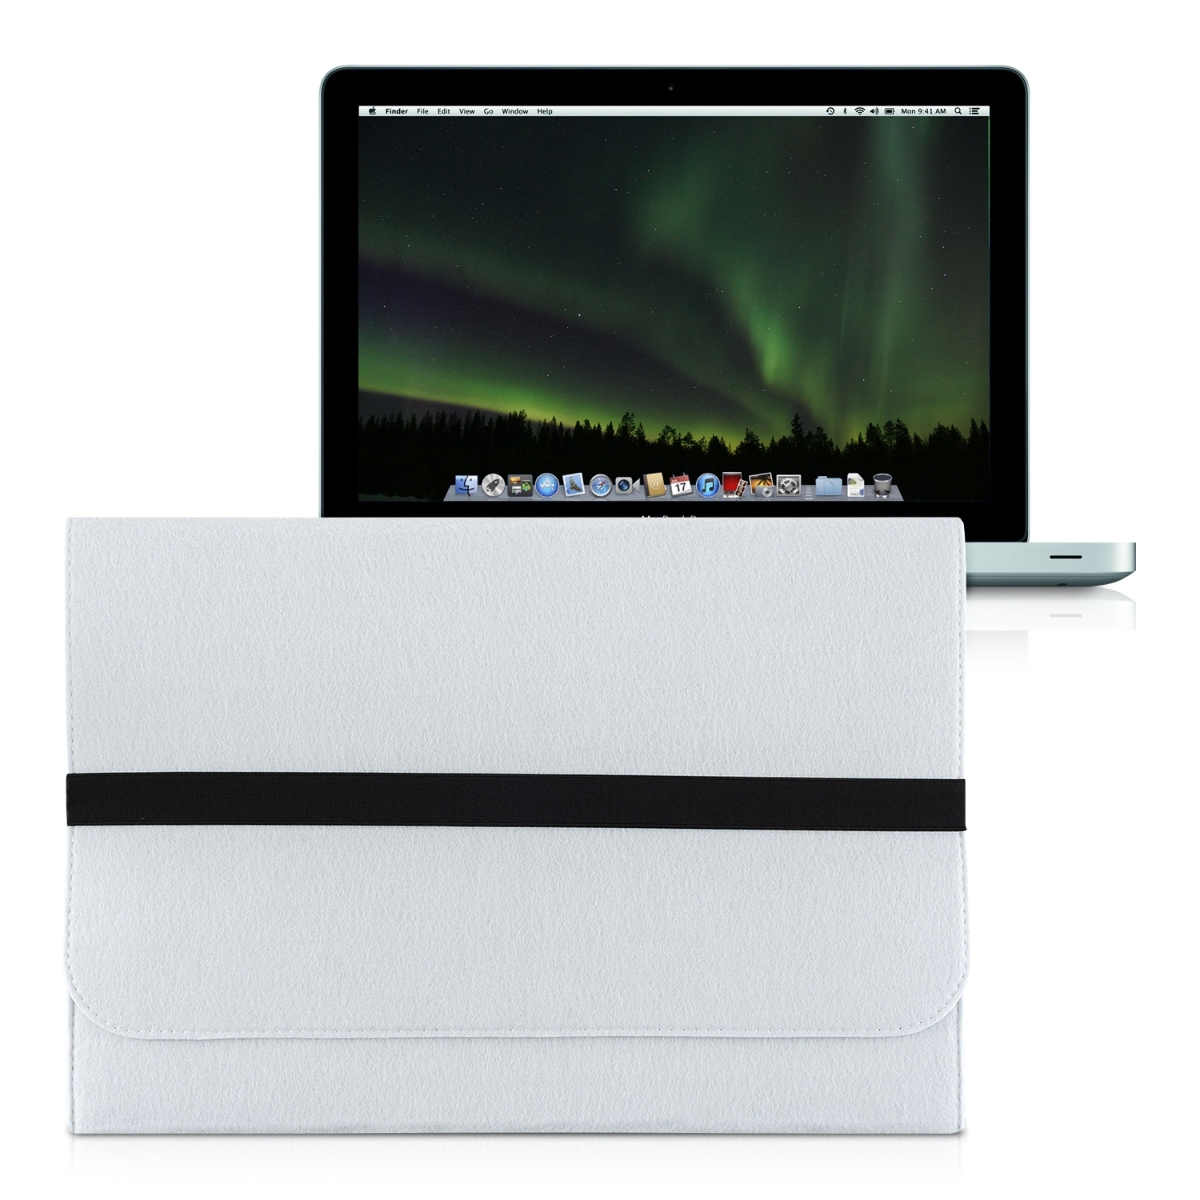 kwmobile laptop sleeve filz wei f r apple macbook pro 15. Black Bedroom Furniture Sets. Home Design Ideas